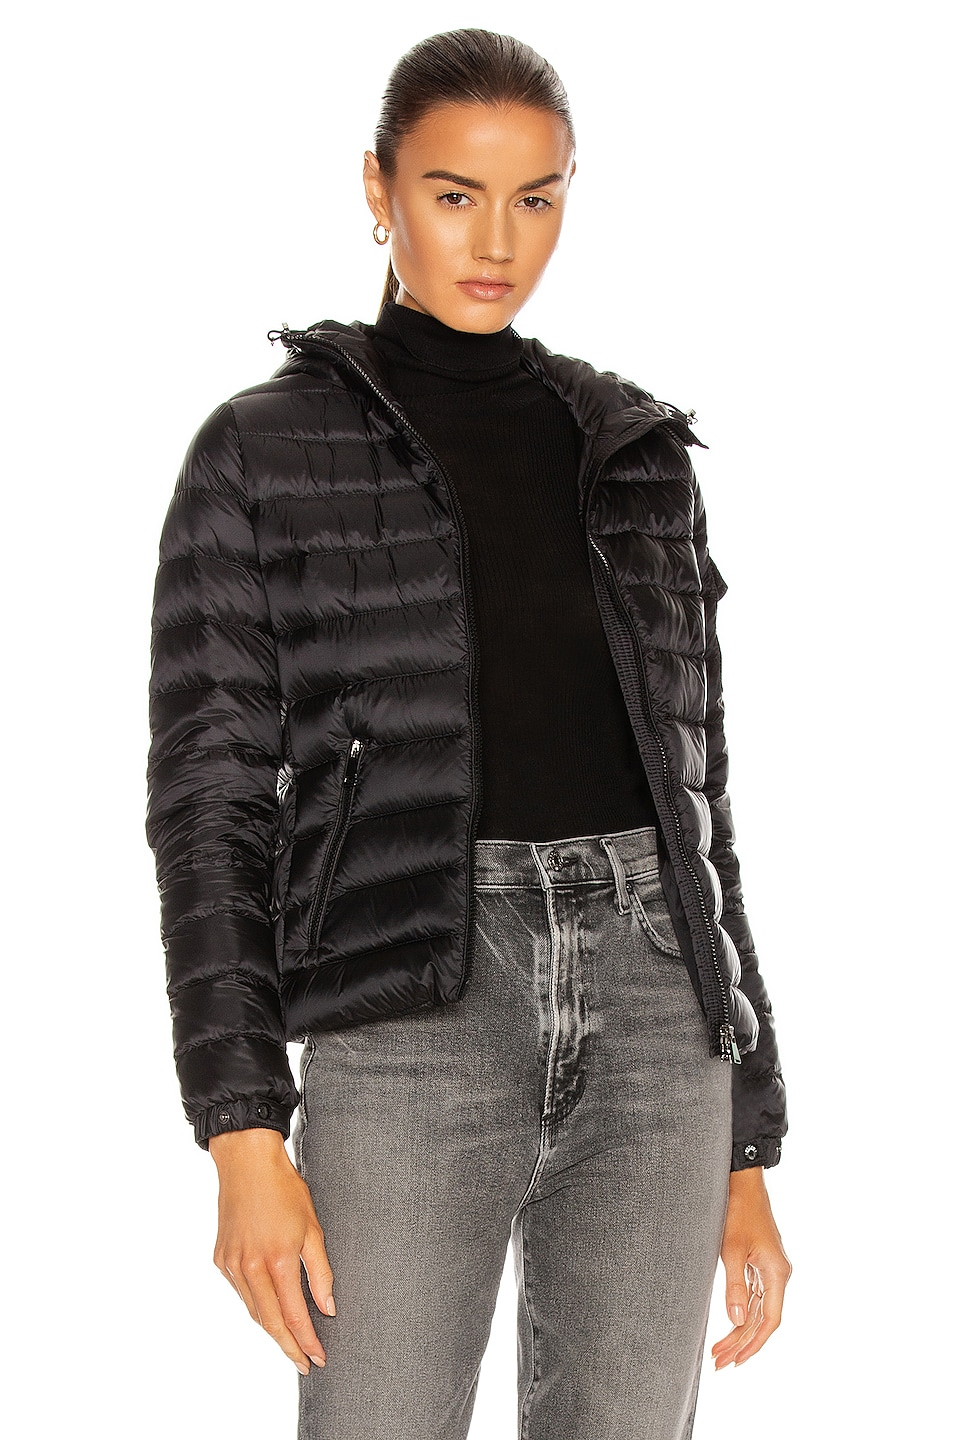 Image 1 of Moncler Bles Giubbotto Jacket in Black